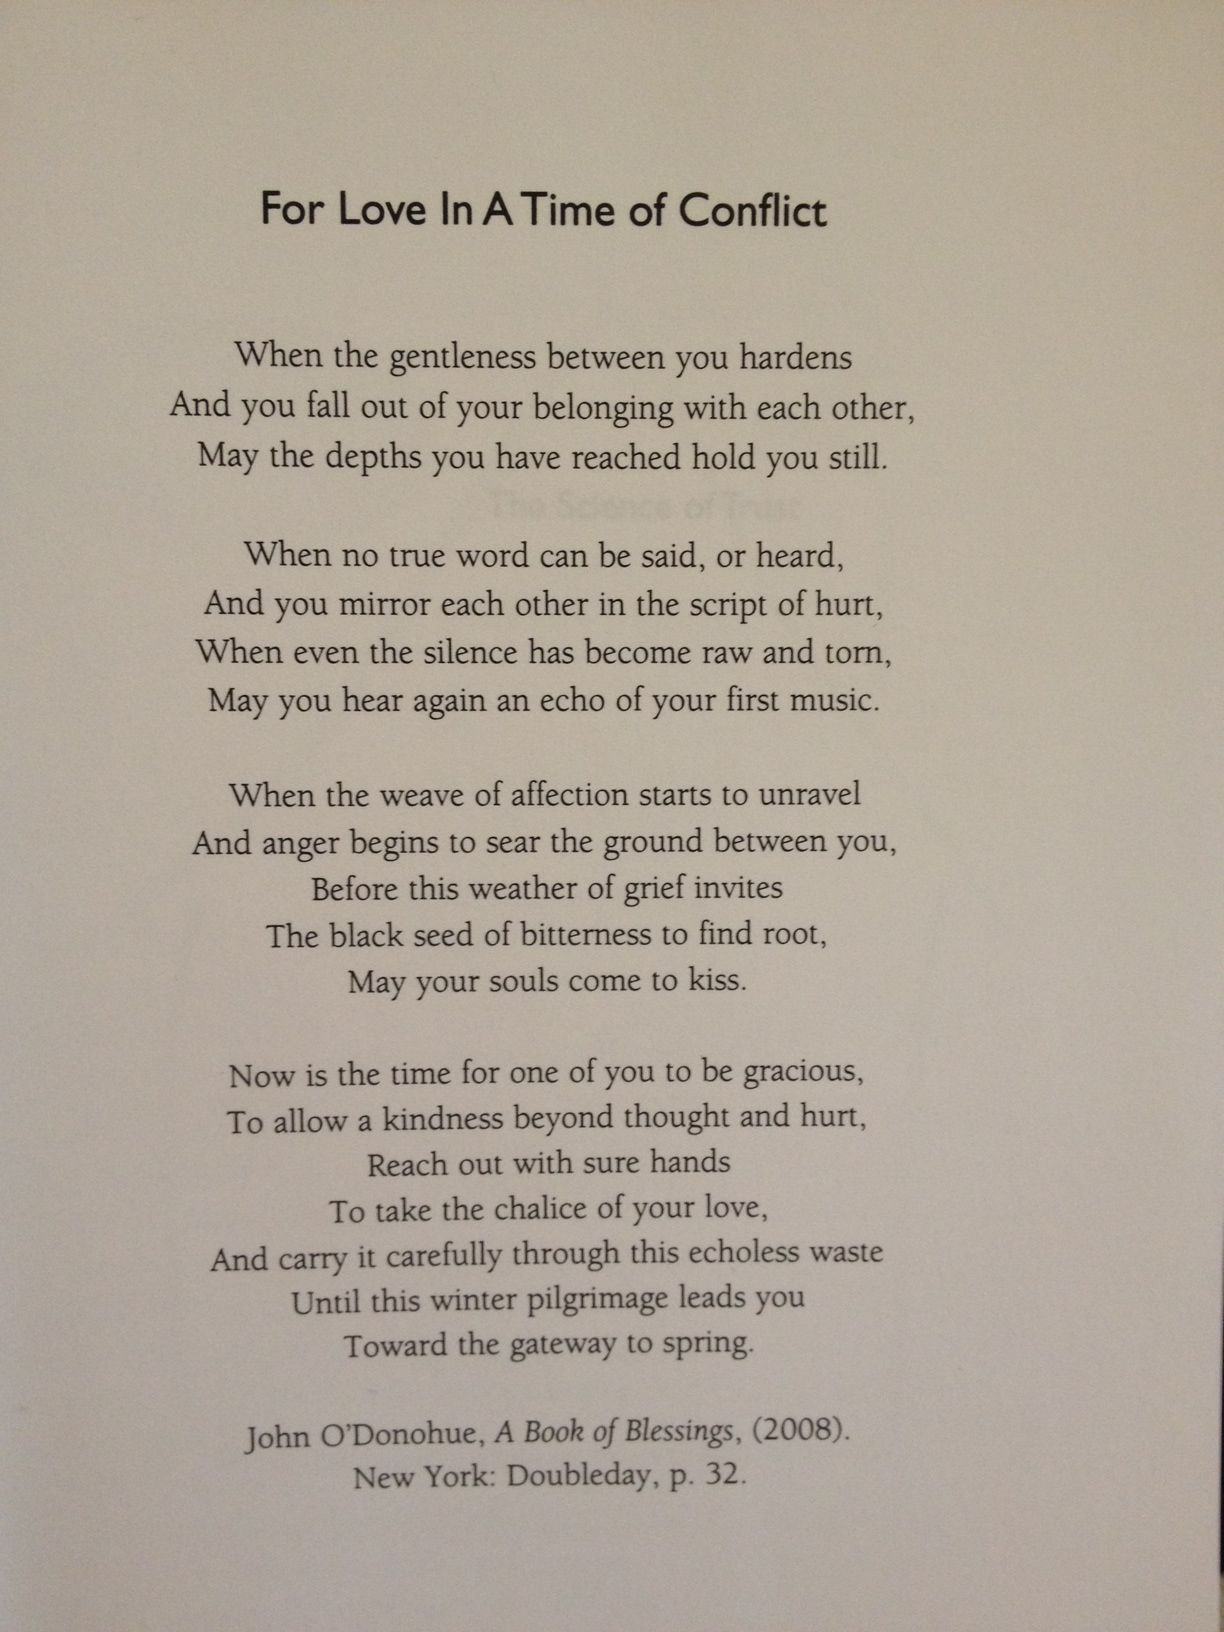 Beautiful Poem For Couples Going Through A Tough Time